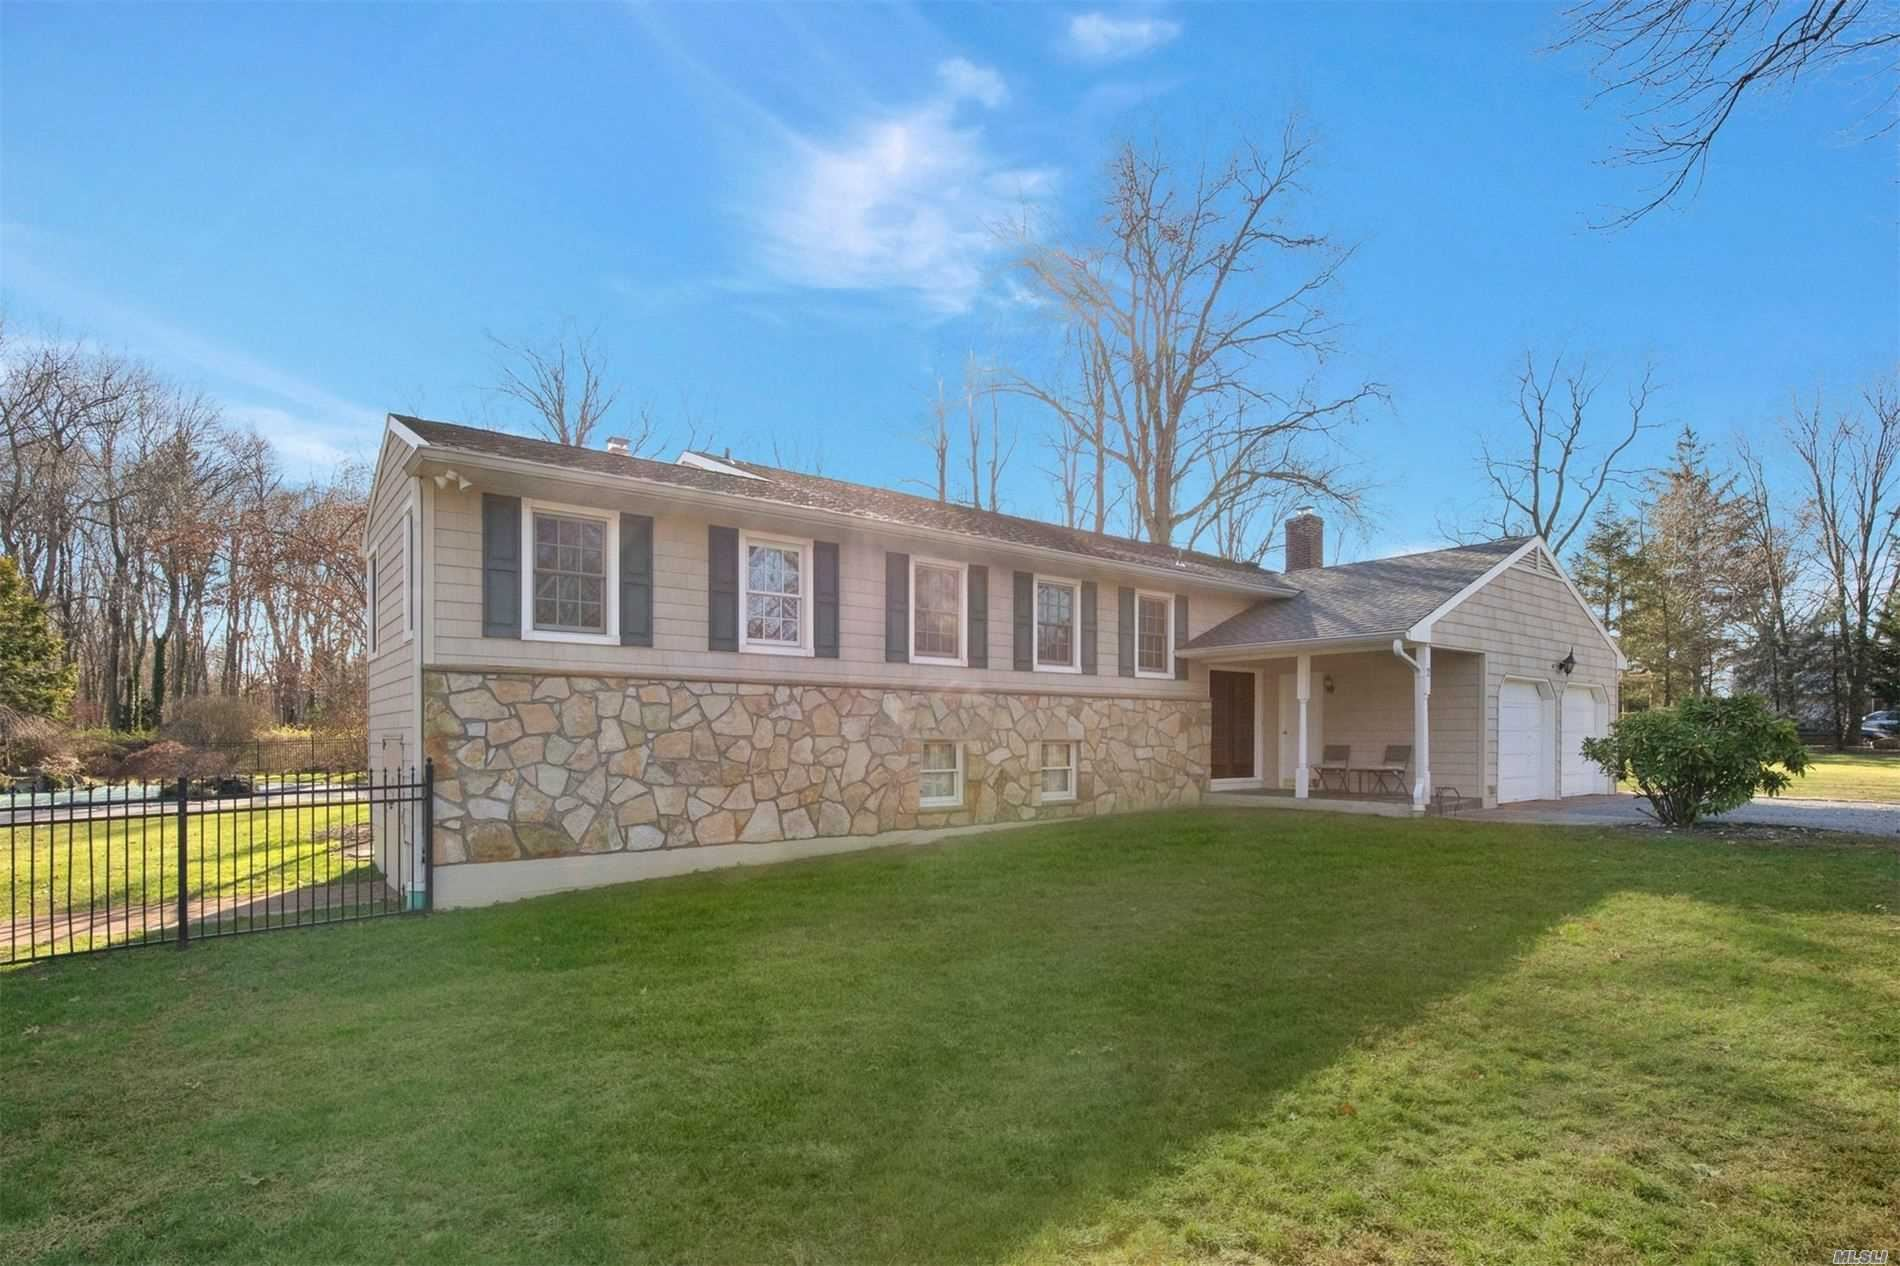 2 Woodcut Lane, Sands Point, NY 11050 - MLS#: 3186853